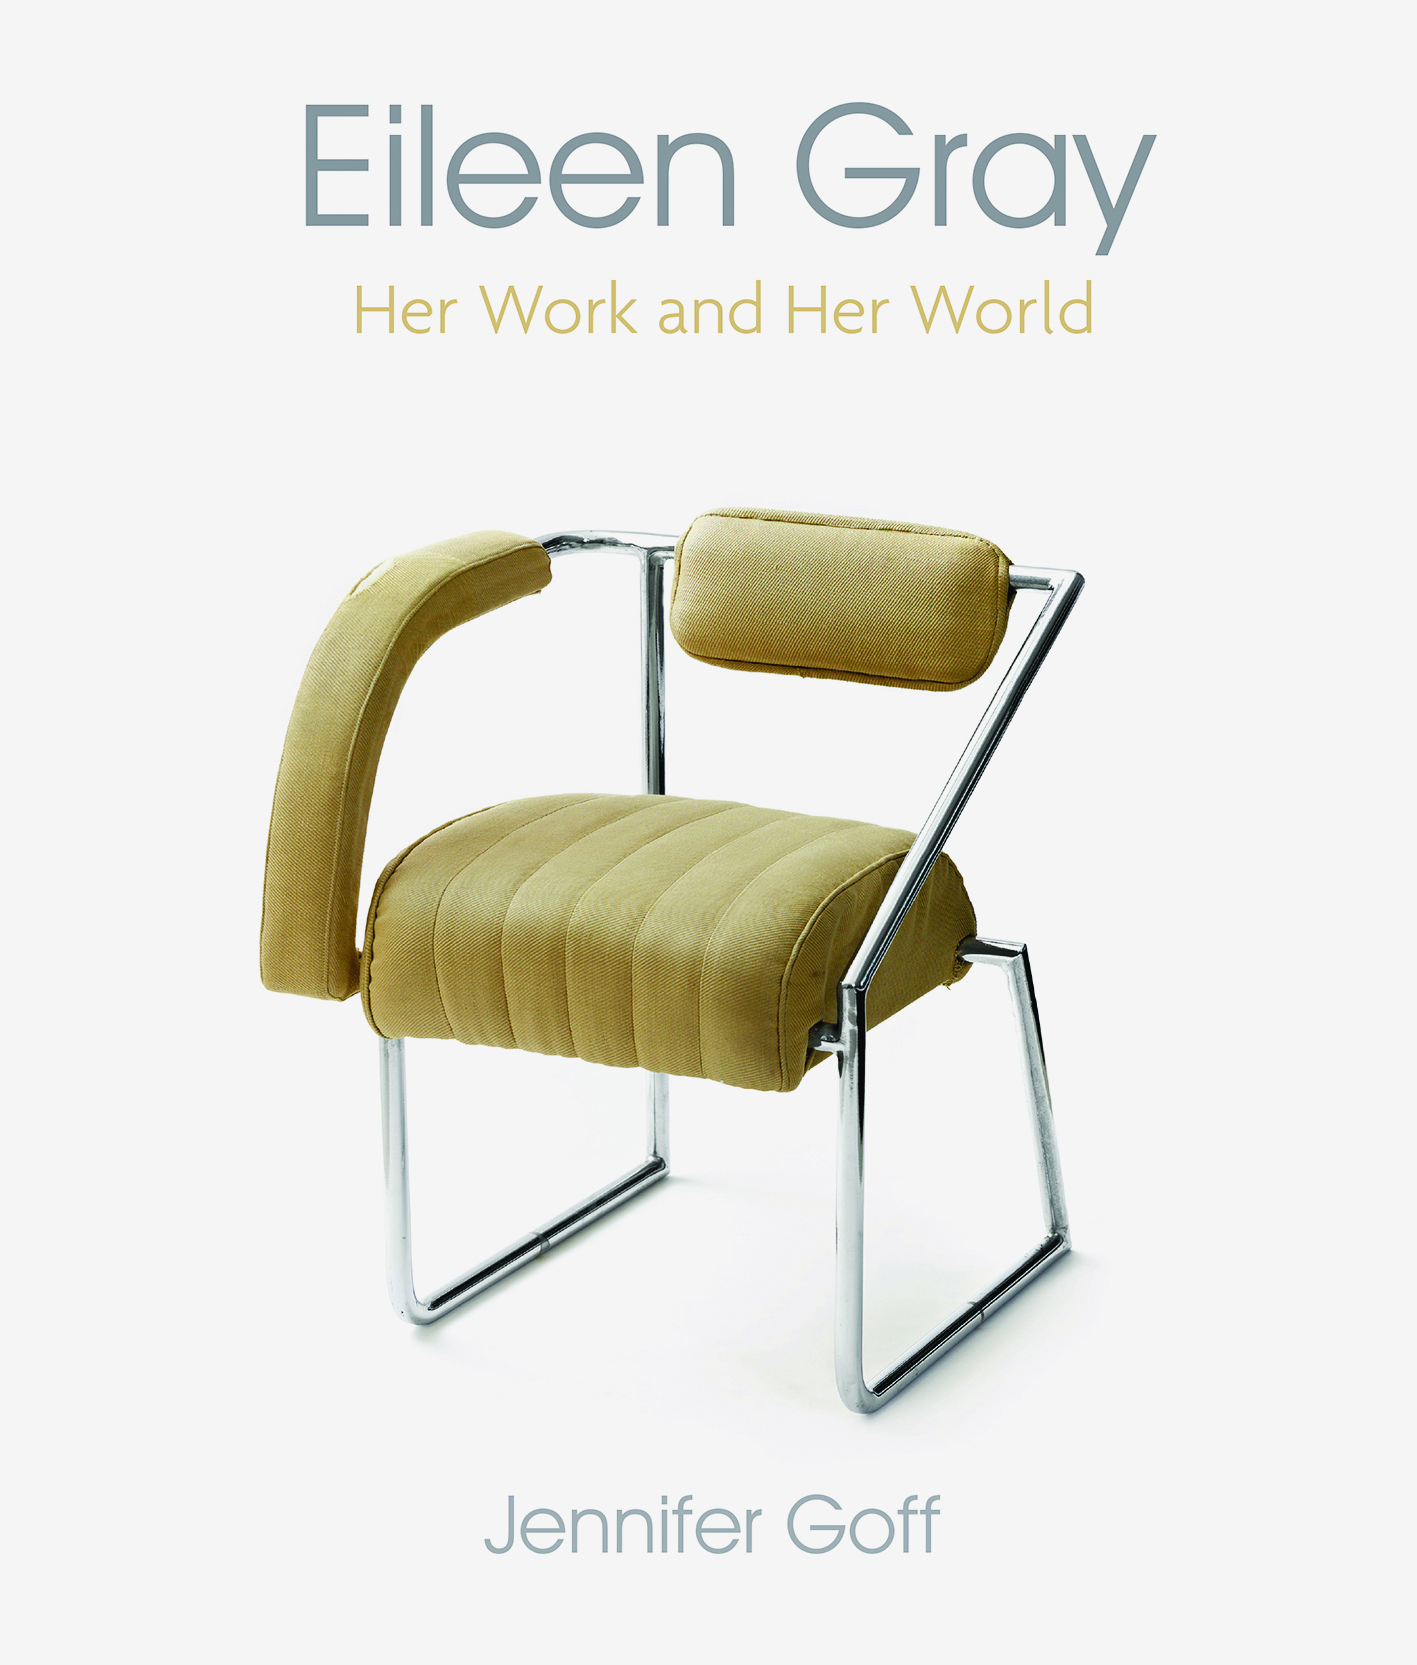 Eileen_Gray_cover